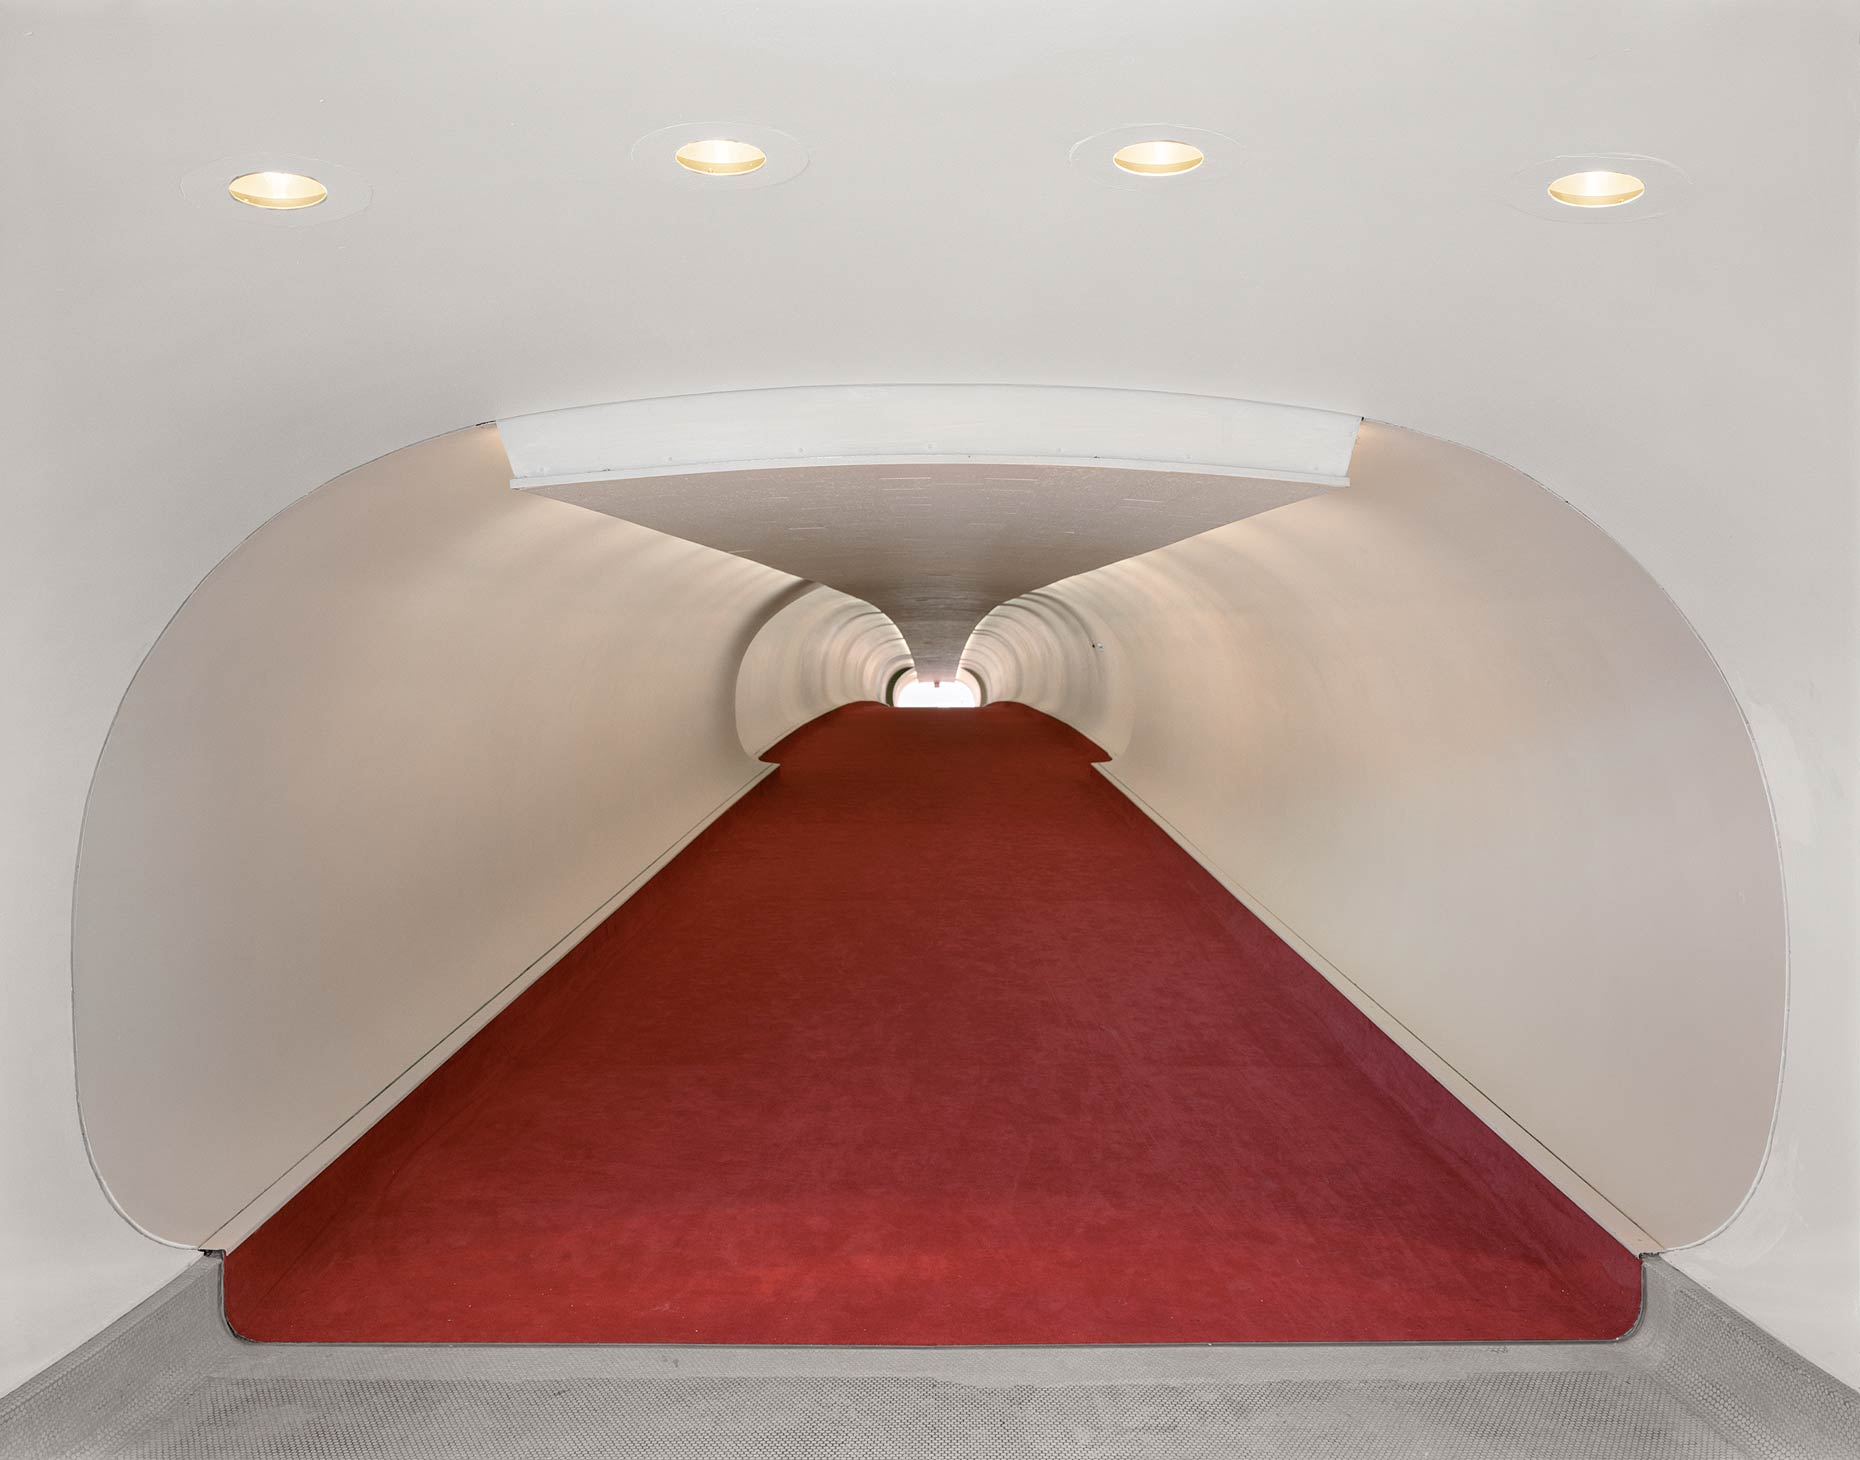 TWA Terminal No. 2, JFK International Airport, Queens, New York, 2011